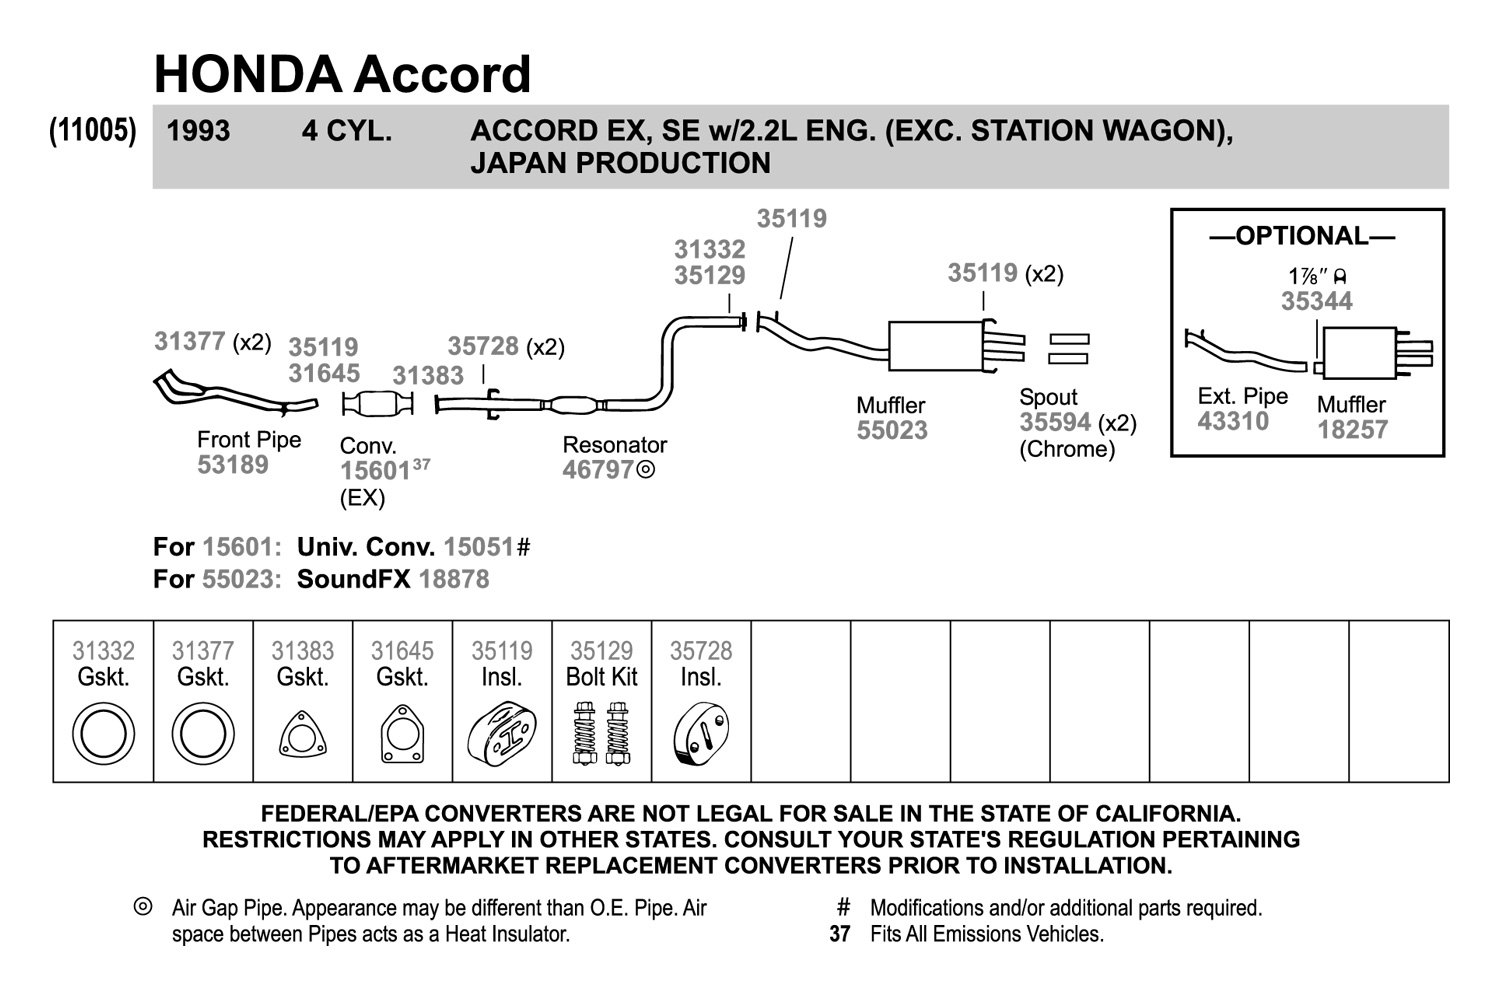 1995 honda accord wagon exhaust diagram automotive block diagram \u2022 1998 honda accord fuel filter location walker 31383 perforated metal and fiber laminate 3 bolt exhaust rh carid com 1989 honda accord wagon 1995 honda accord lx